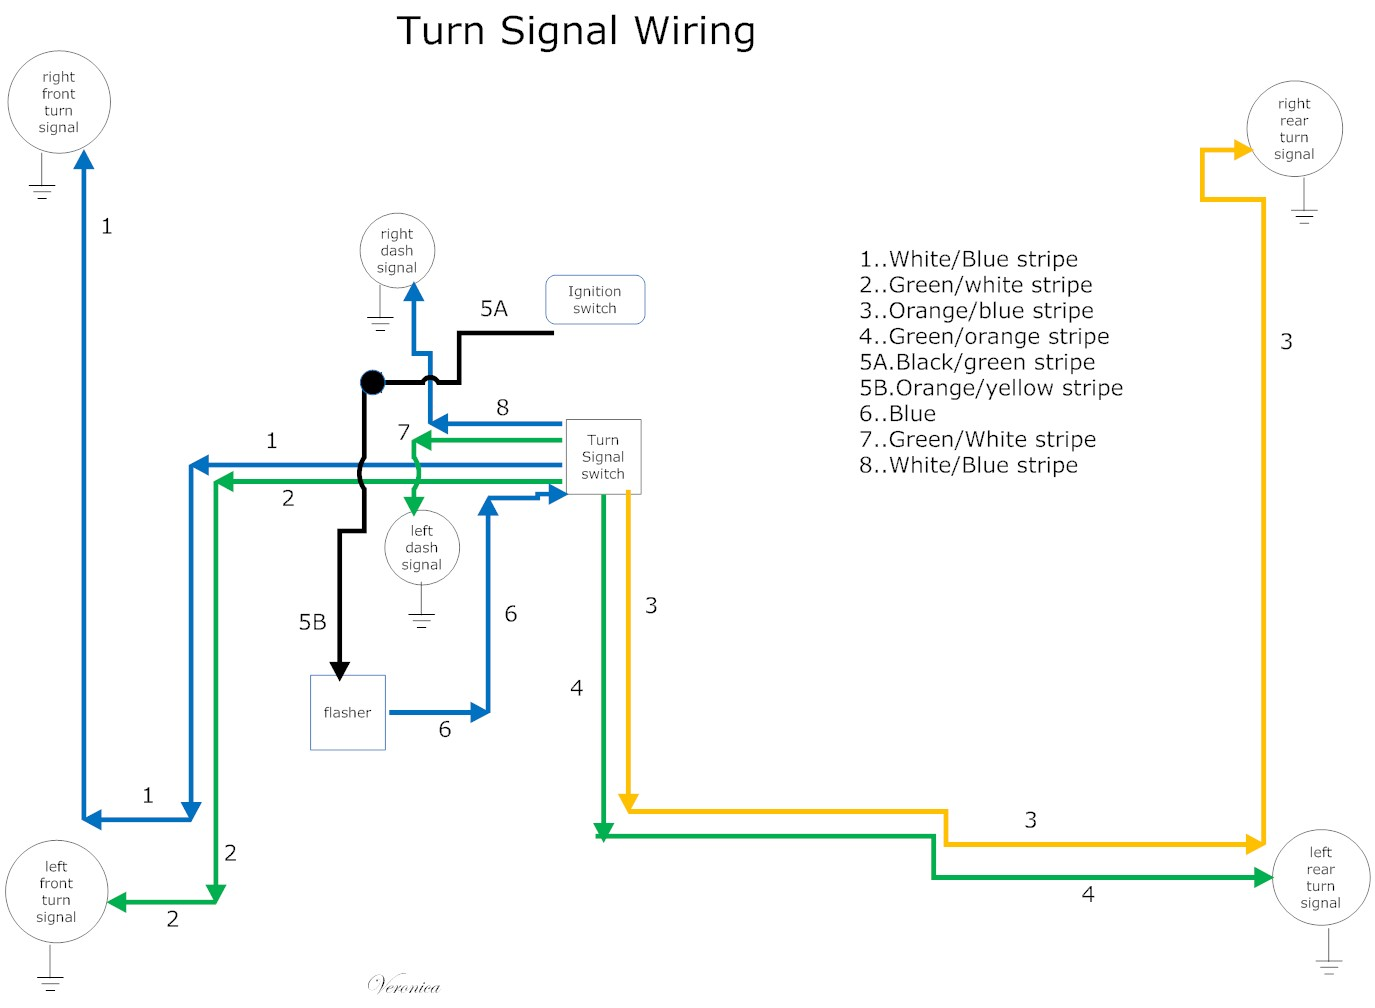 Turn+signal+Wiring turn signal wiring diagram turn signal wiring diagram 05 victory 1965 chevy truck turn signal wiring diagram at reclaimingppi.co